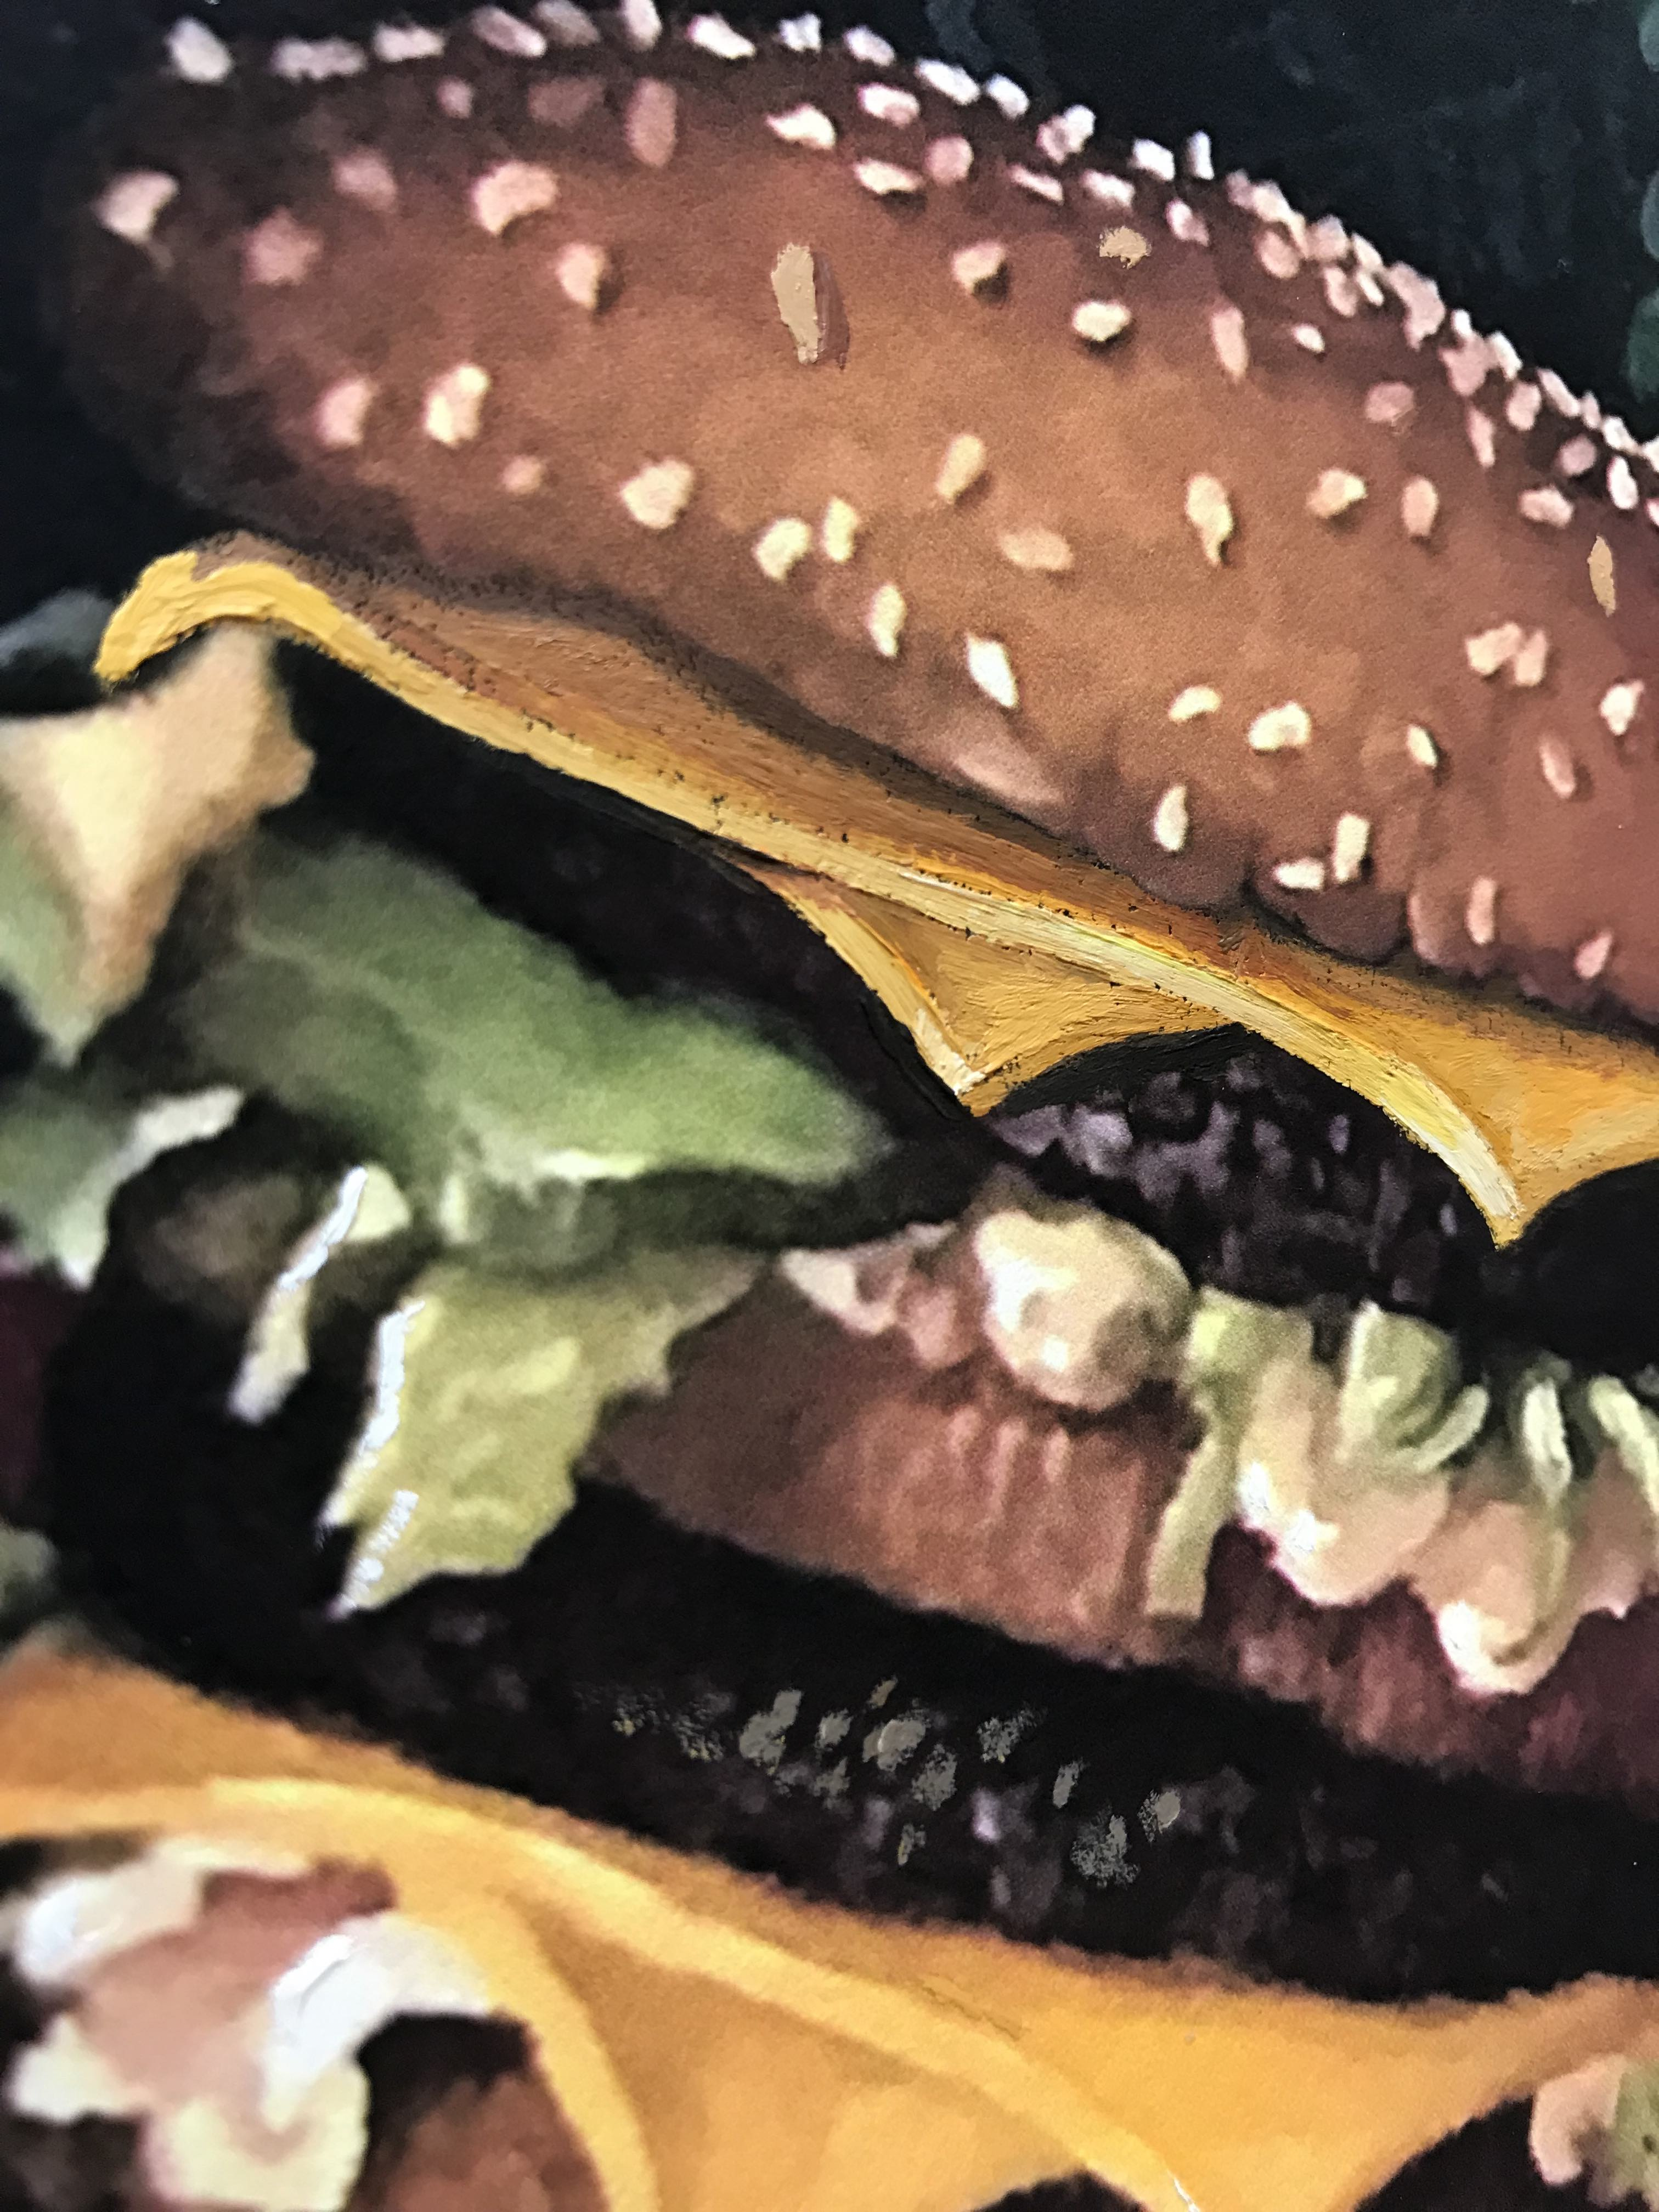 Calorie Composition I with Extra Cheese by Dave Pollot detail 2